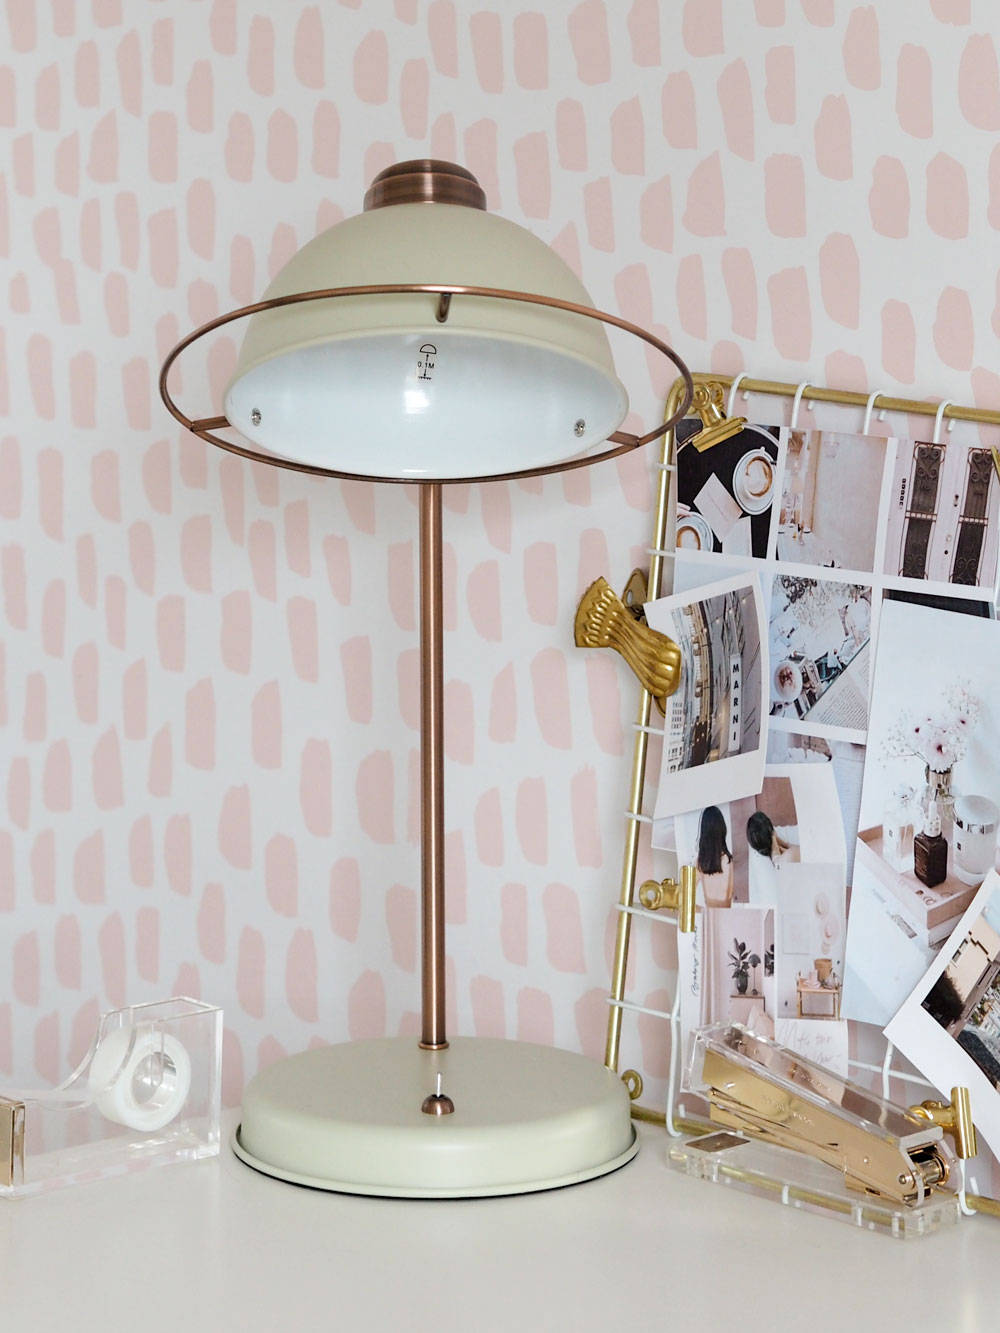 Today I'm sharing my office updates from Studio.co.uk, including a cream Bauhaus lamp and VQ Retro Mini Radio.